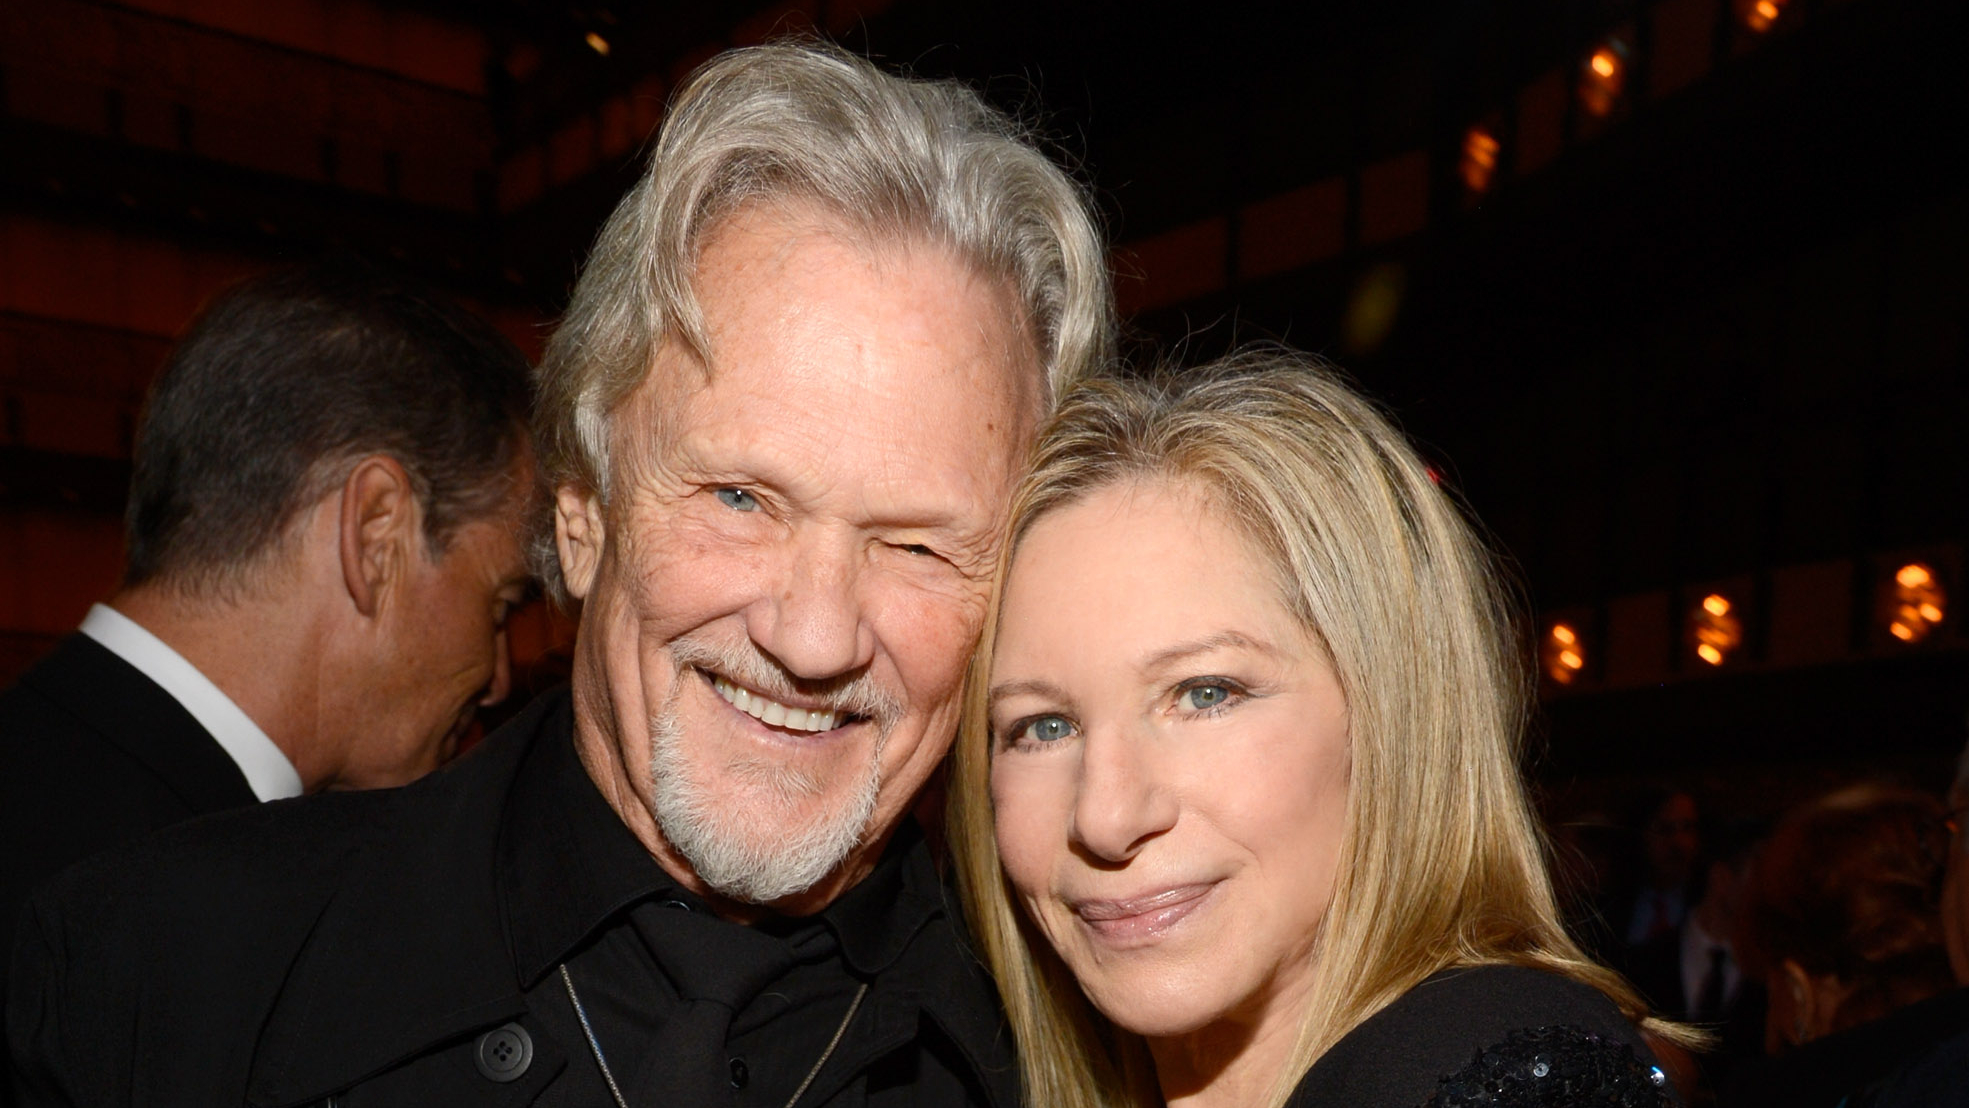 Barbra Streisand and Former Costar Kris Kristofferson Reunite 43 Years After Their Version of 'A Star Is Born' — Look!